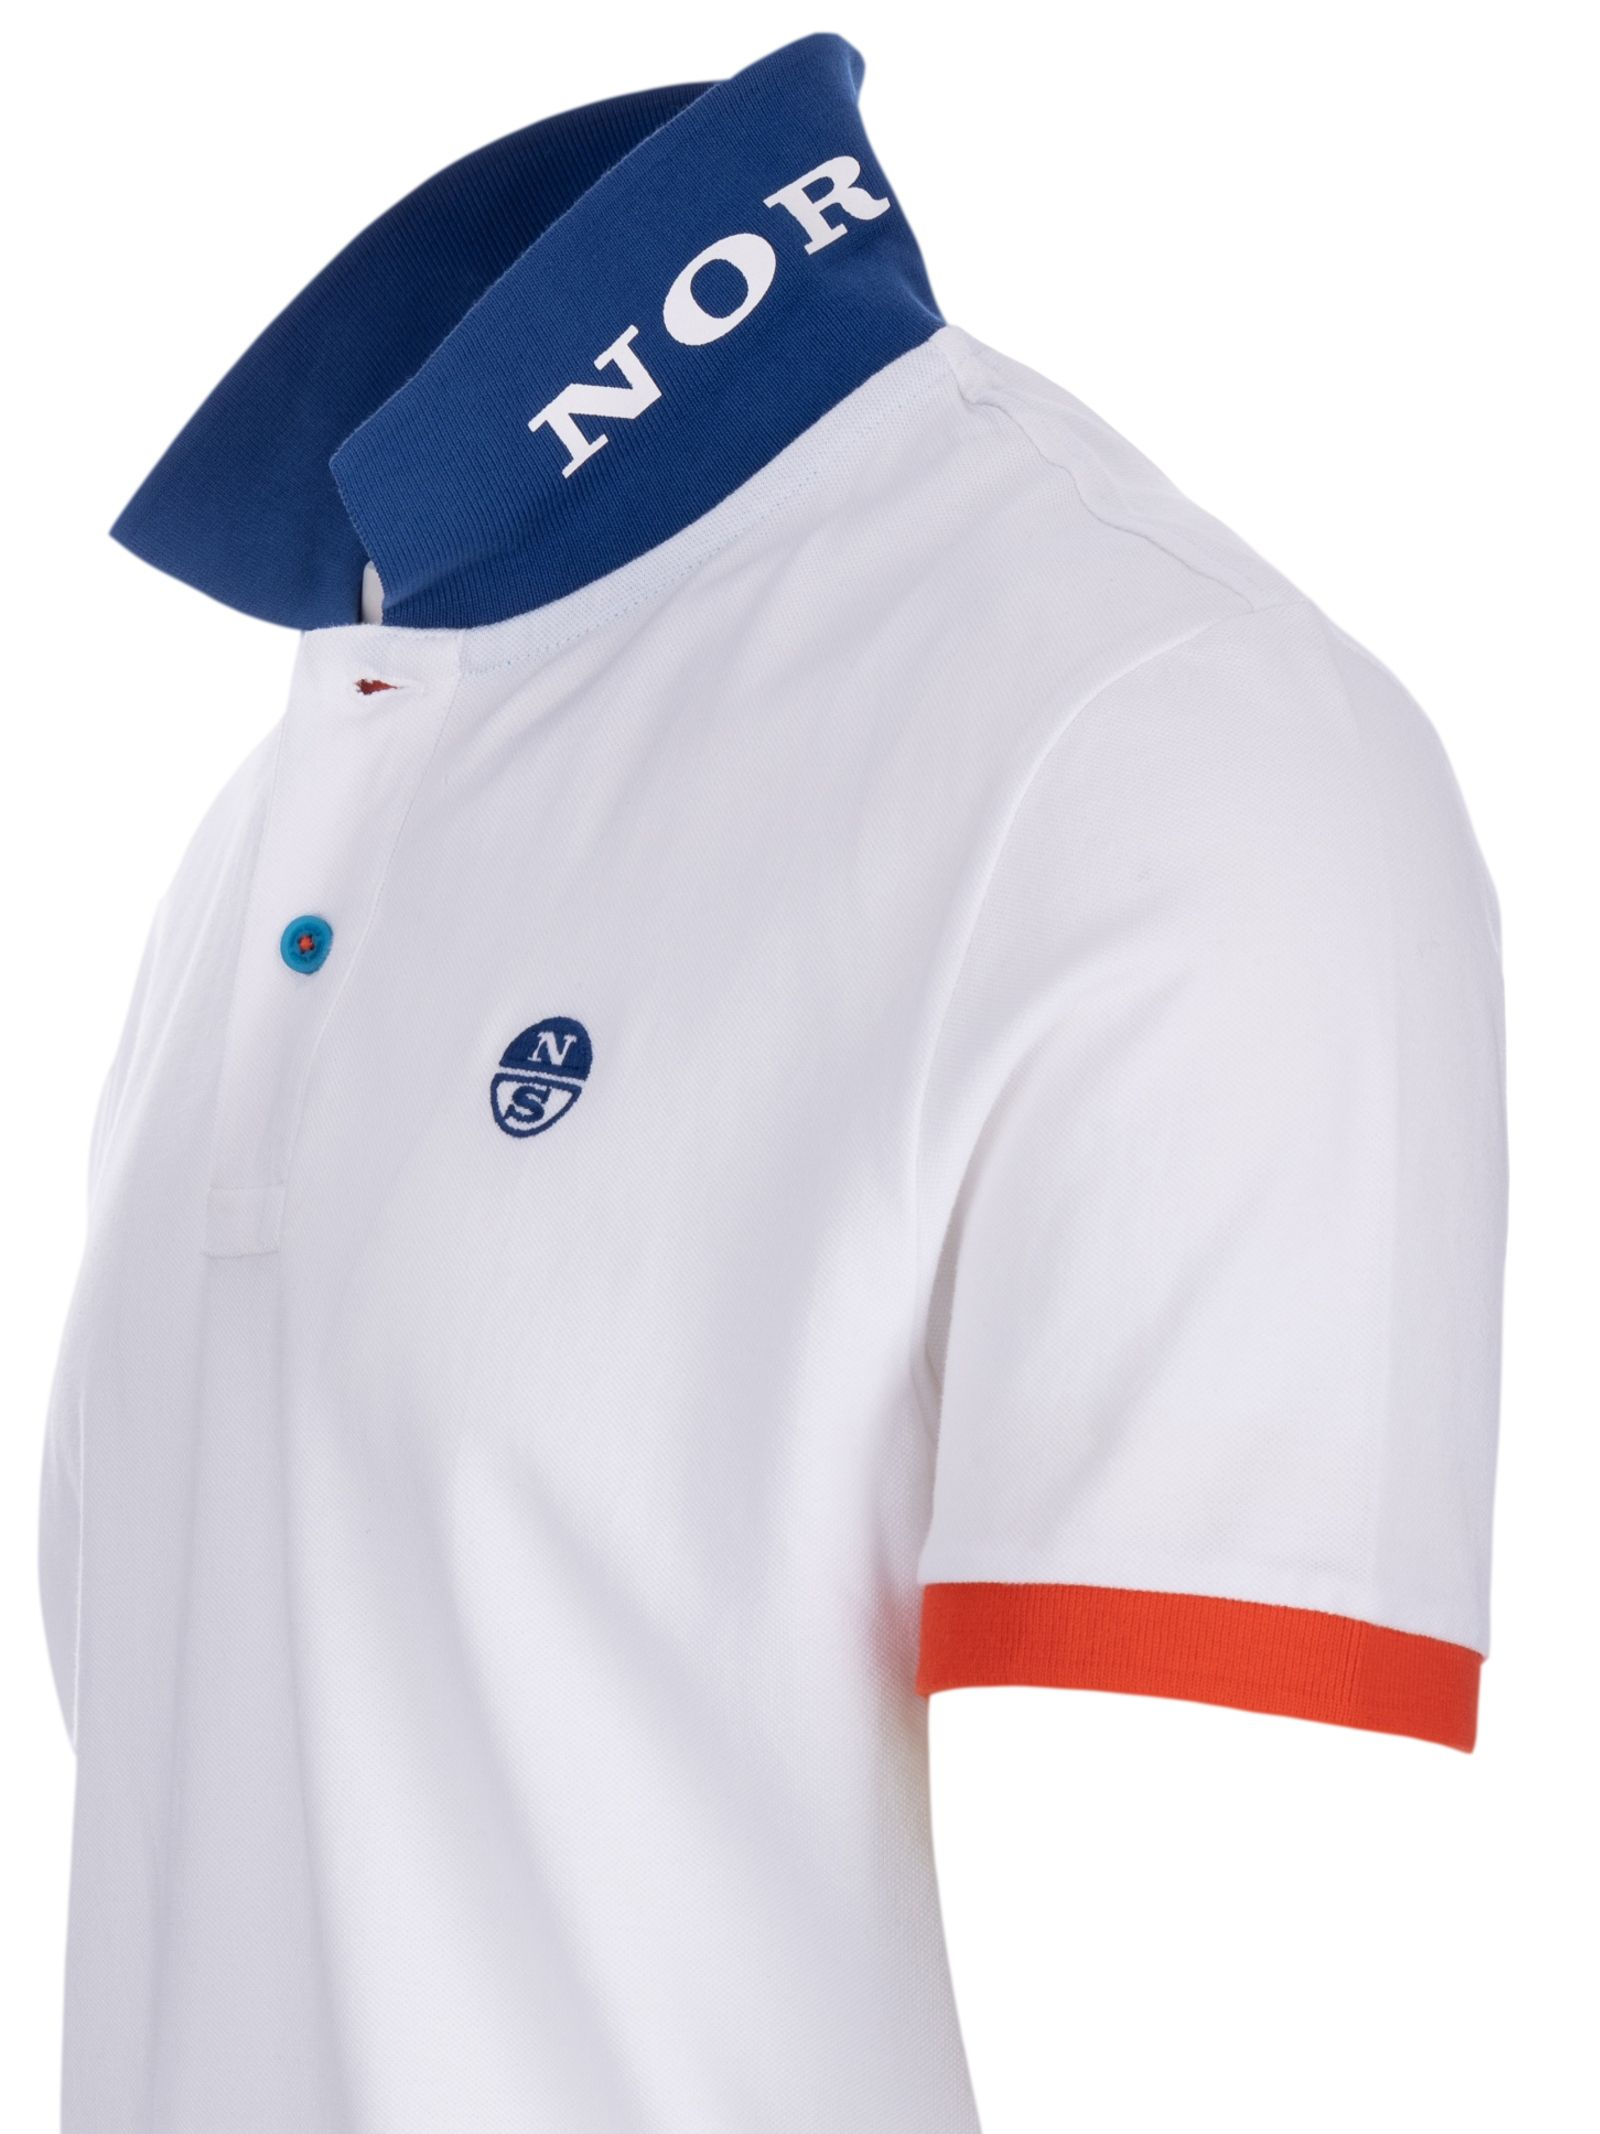 North Sails Polo 692309 000